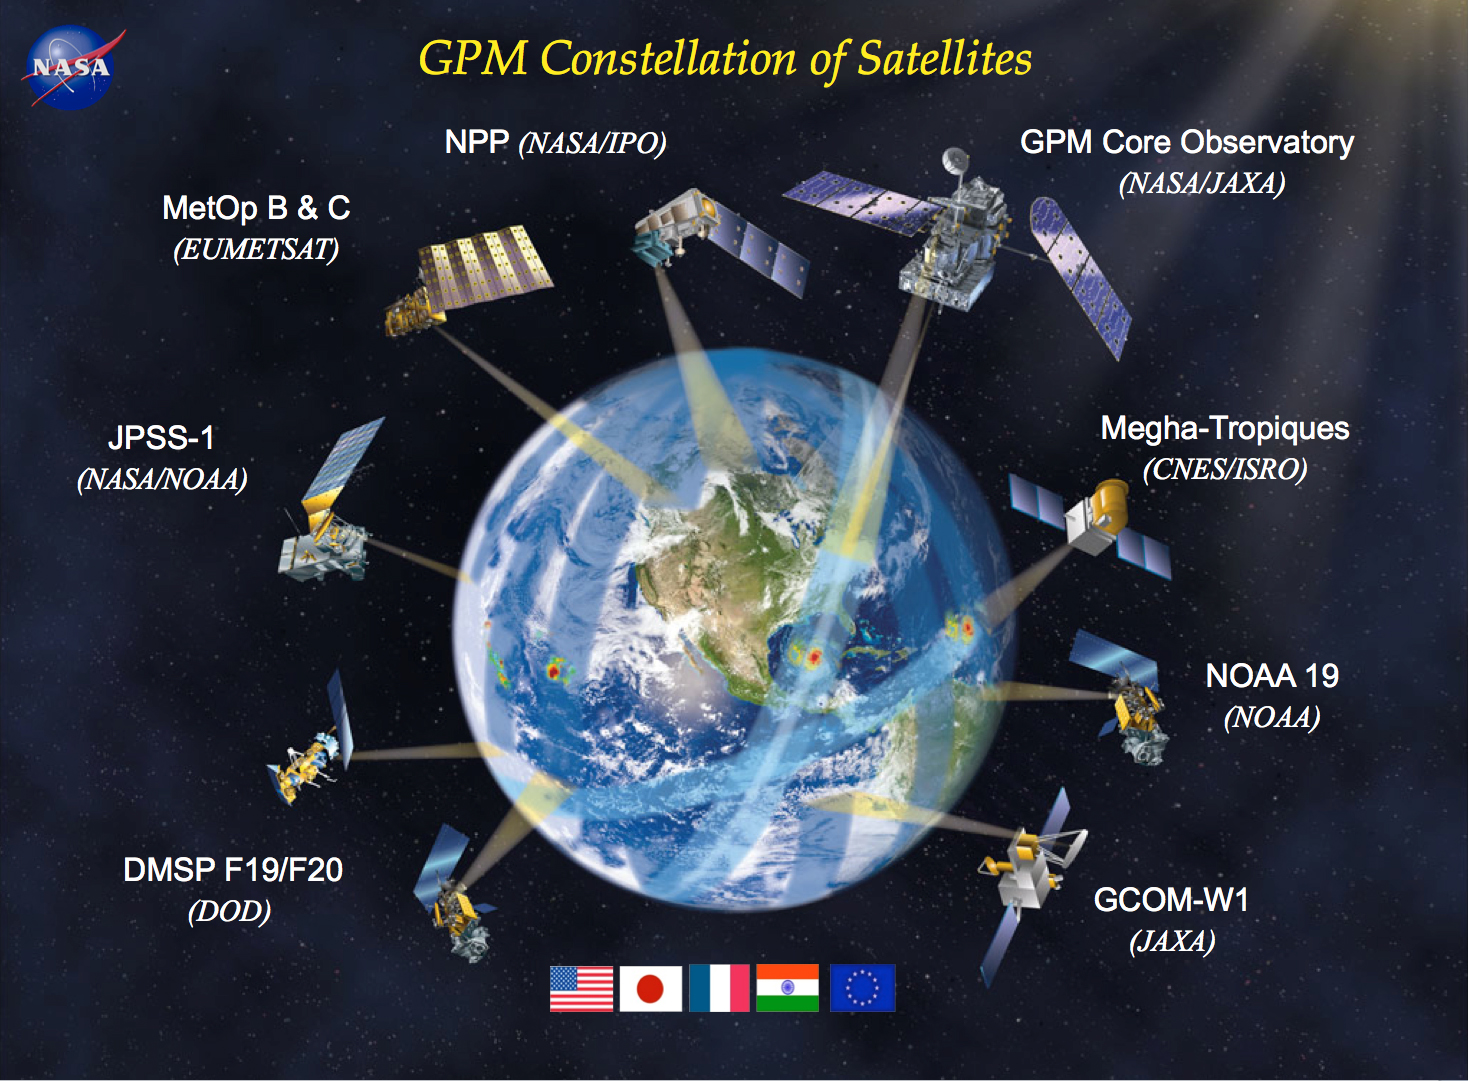 http://www.nasa.gov/images/content/740891main_GPM_constellation_updated_8_25_11.jpg